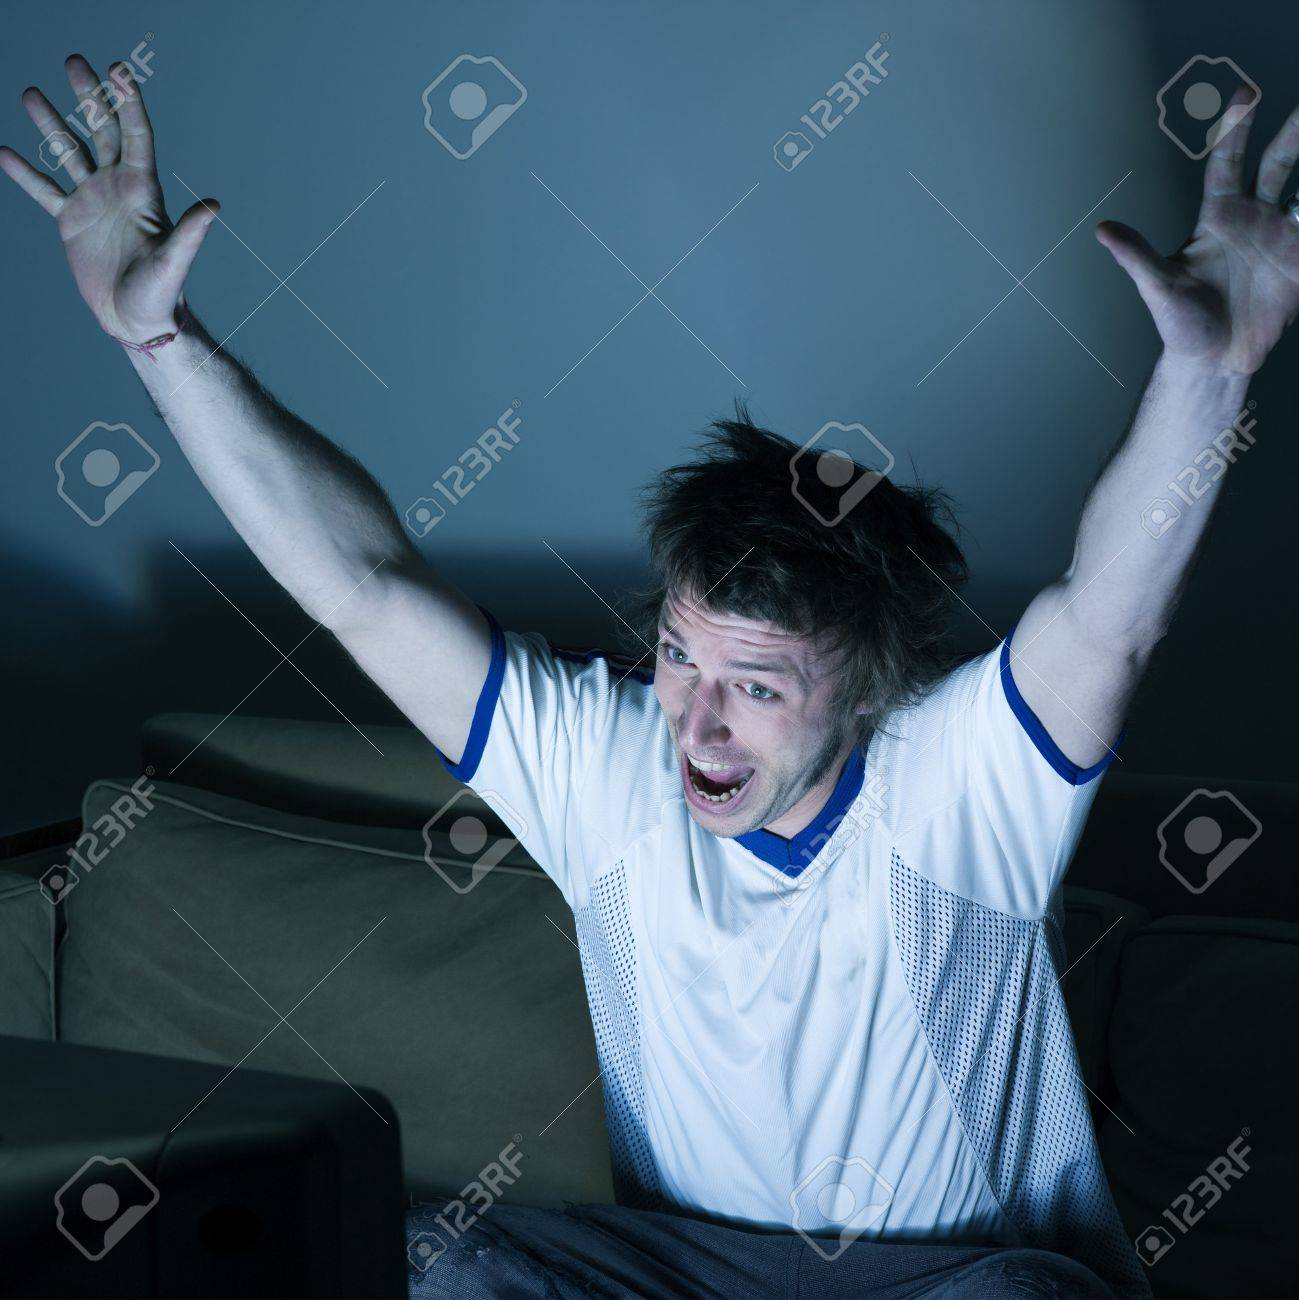 pictures in a living room a funny and expressive man sitting on a couch  watching on tv  sport event Stock Photo - 2966810